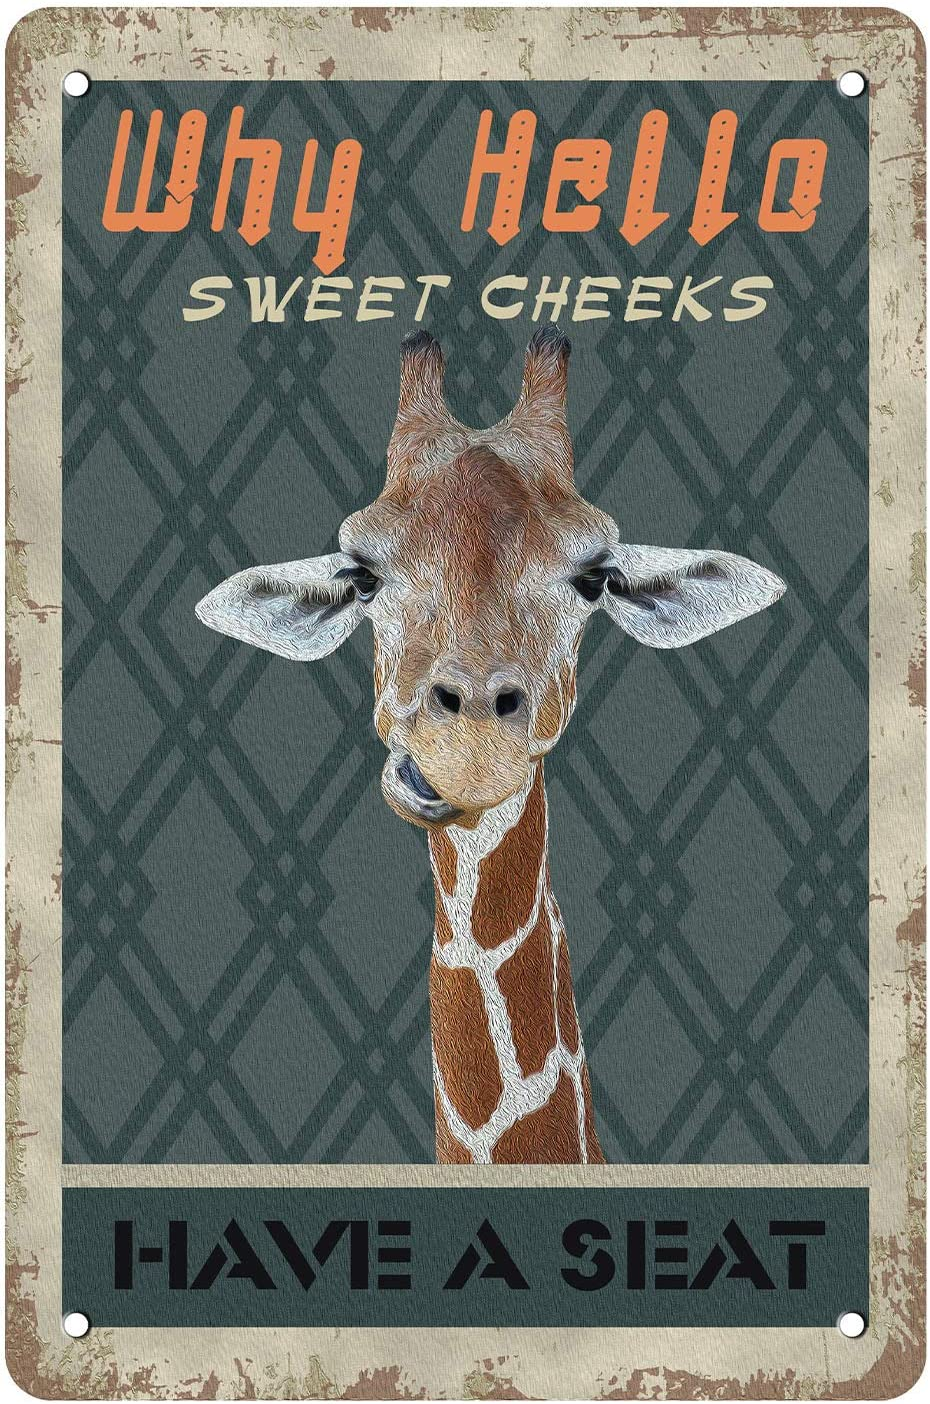 MuaToo Sweet Cheeks Giraffe Wall Decorative Decor Tin Sign Funny,Have A Seat Livingroom Bedroom Bathroom Vintage Retro Poster Paintings Cute Giraffe Picture Home Decoration,812inches.